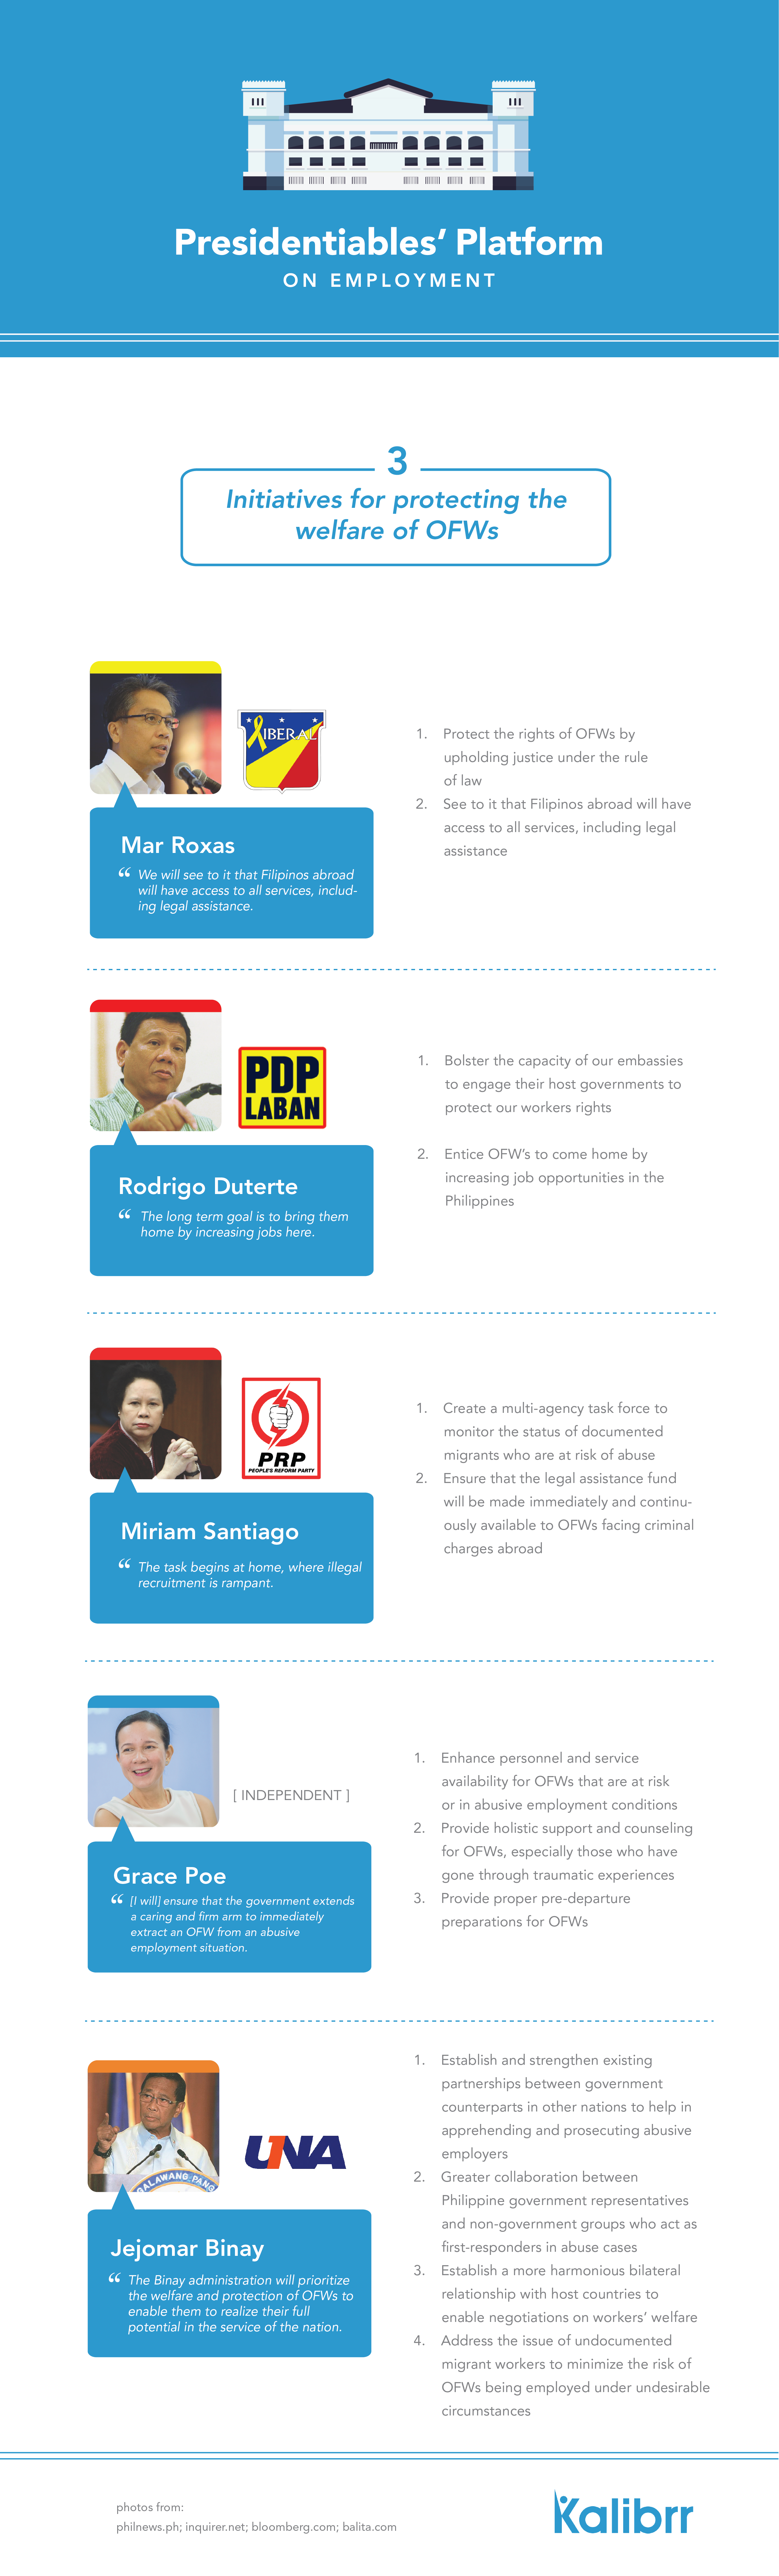 [Infographic] Presidentiables Platform - 03